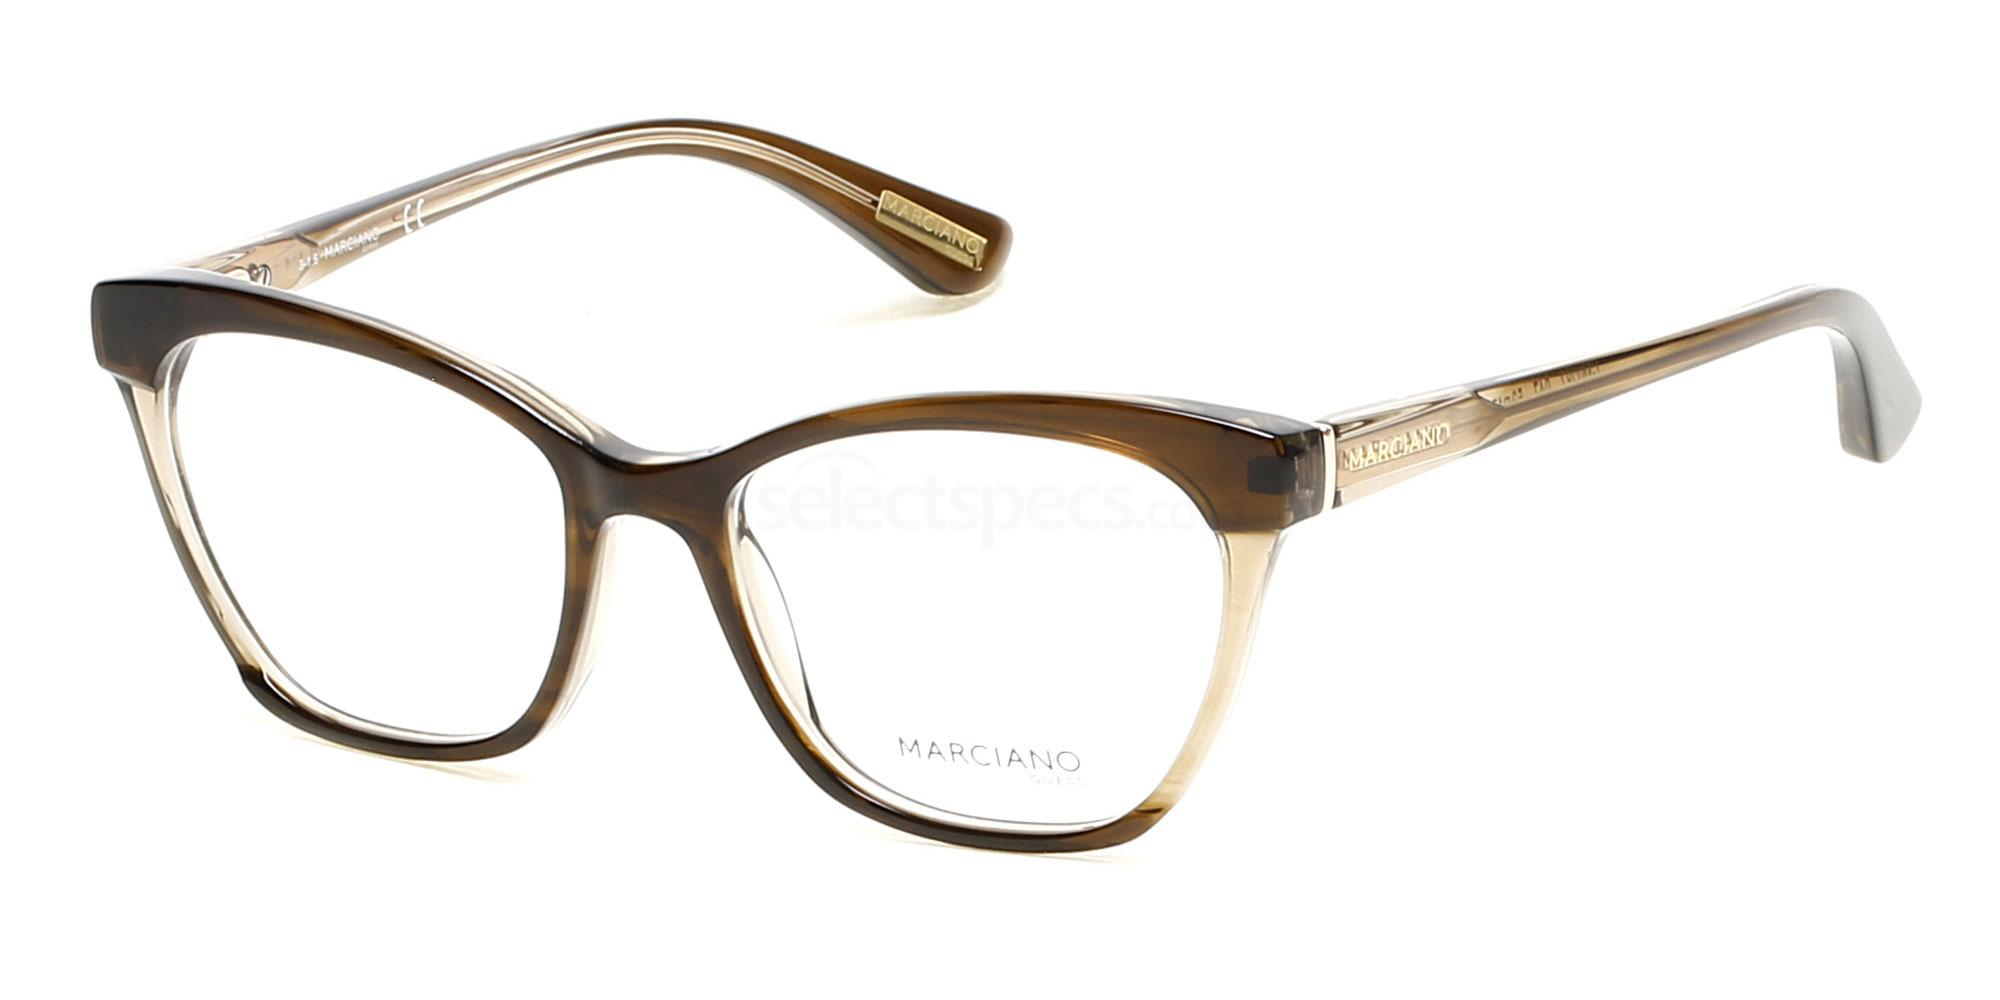 047 GM0287 Glasses, Guess by Marciano